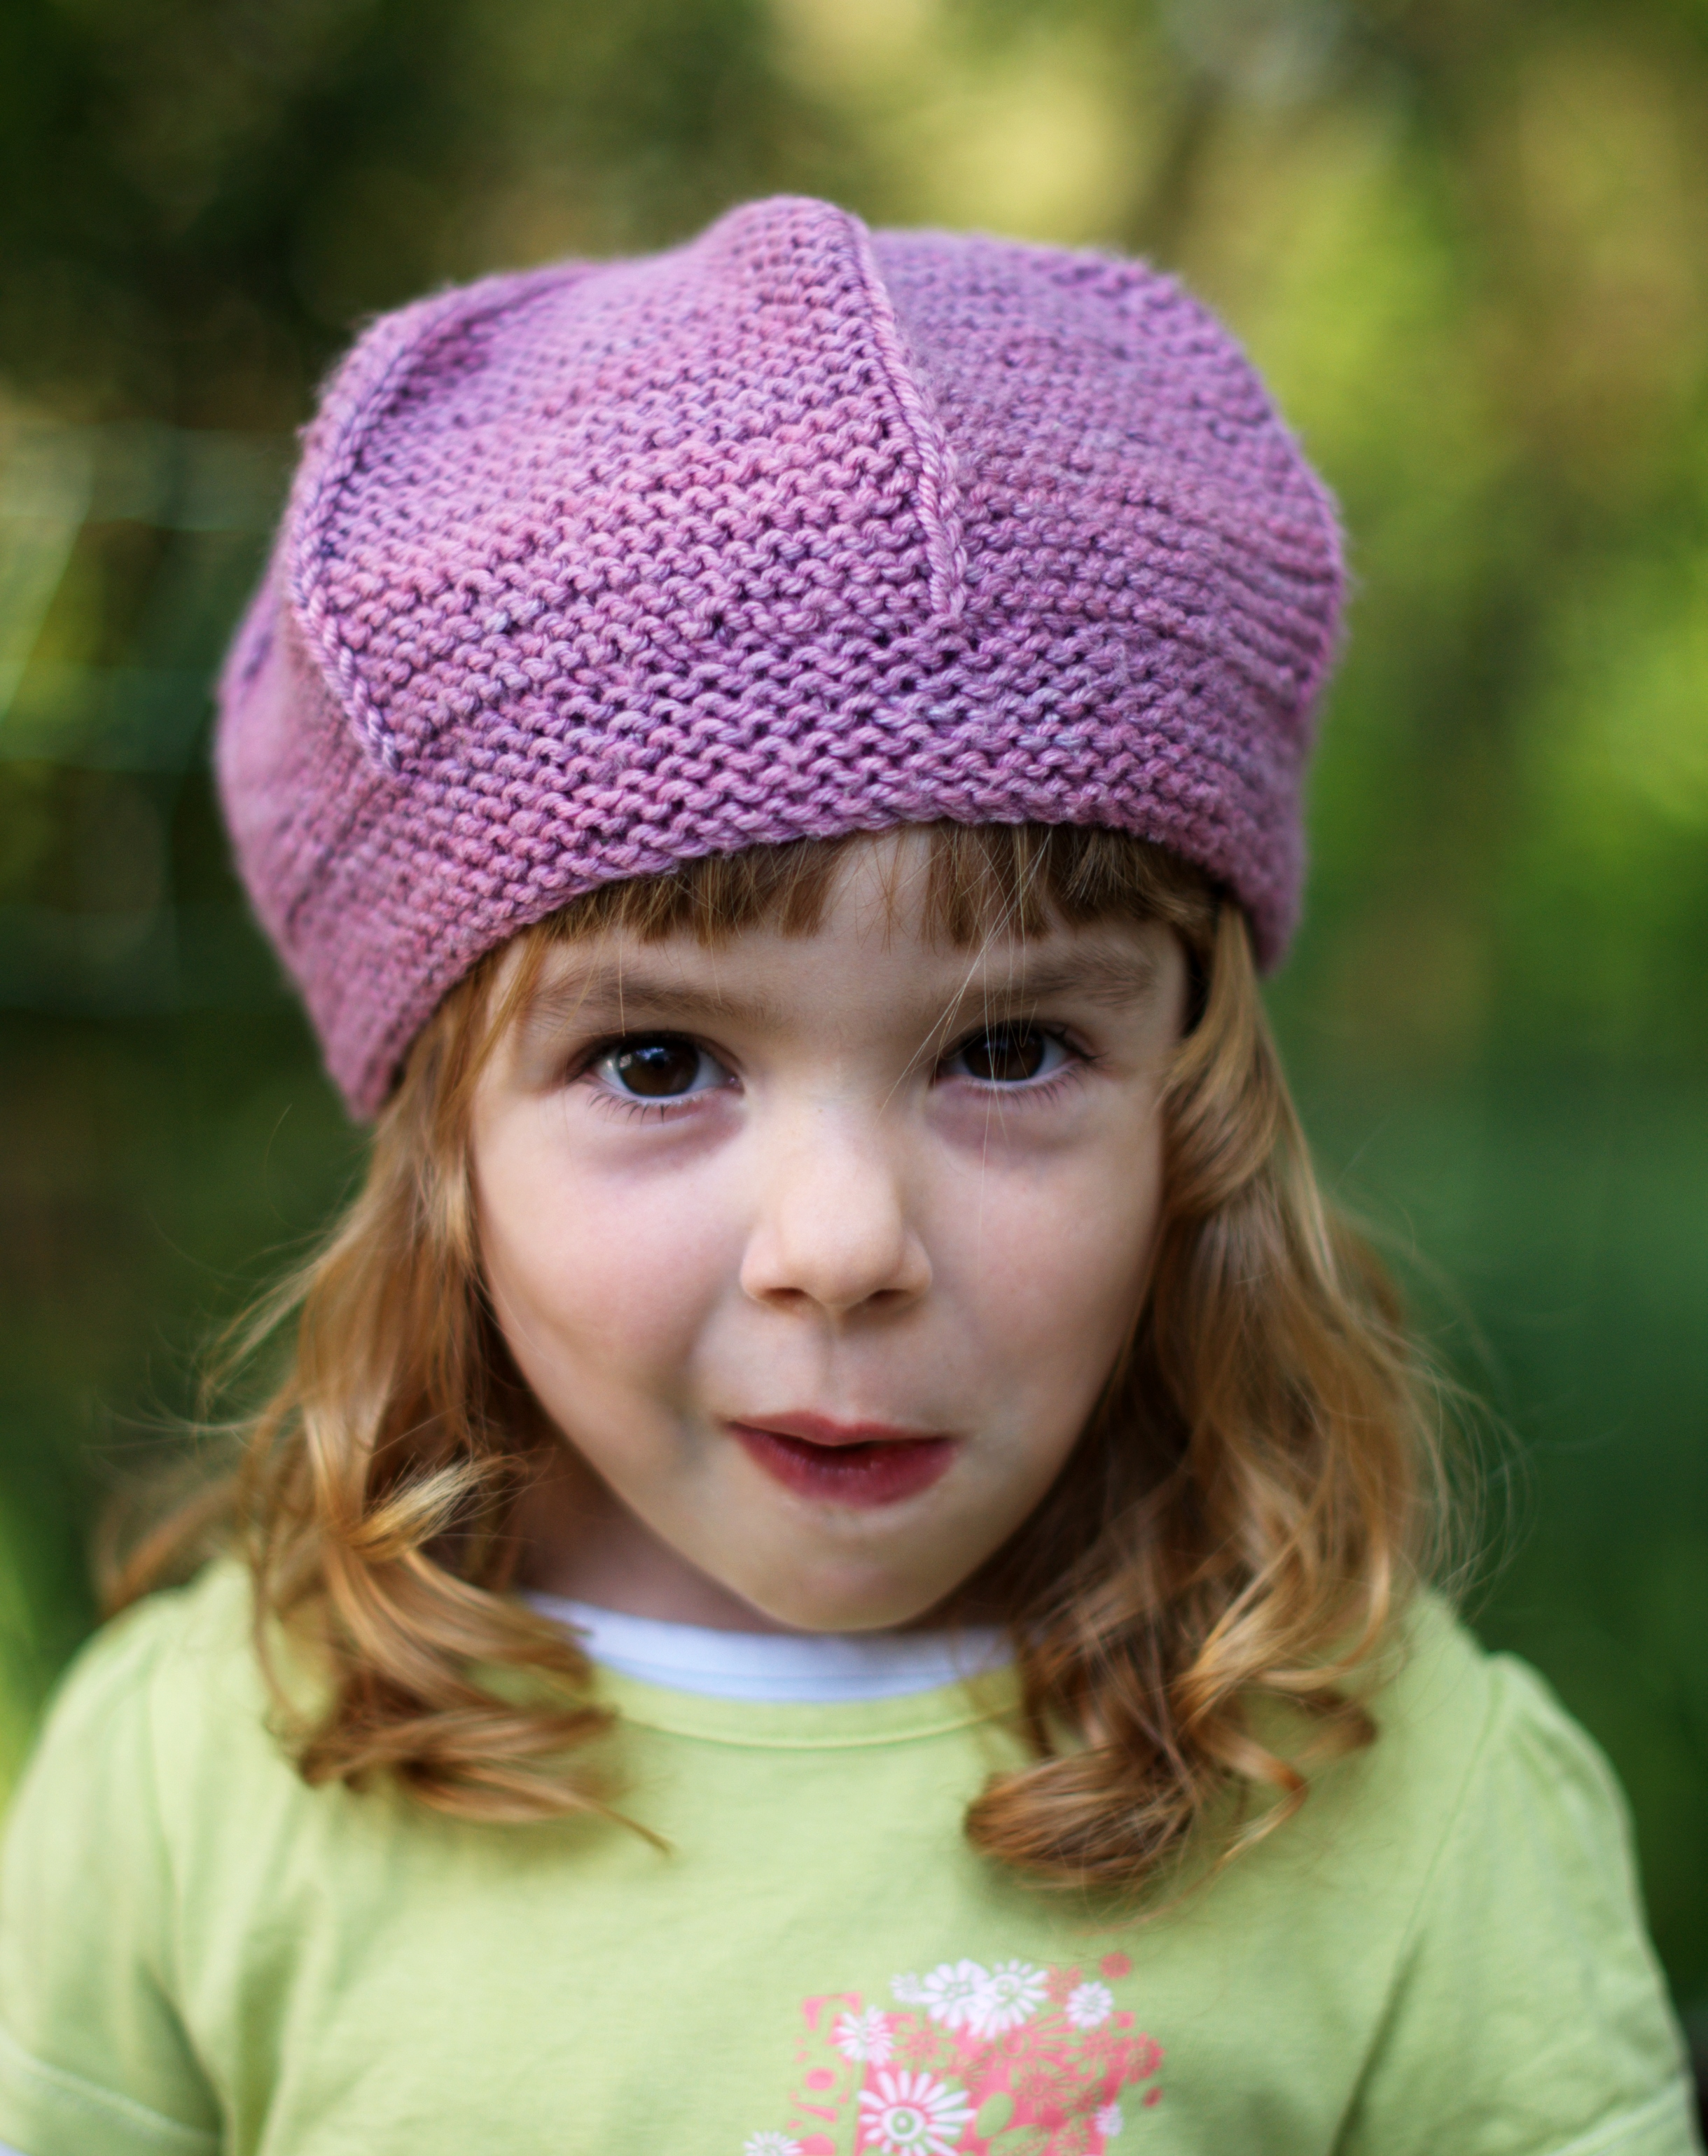 Queenie childs garter stitch beret knitting pattern